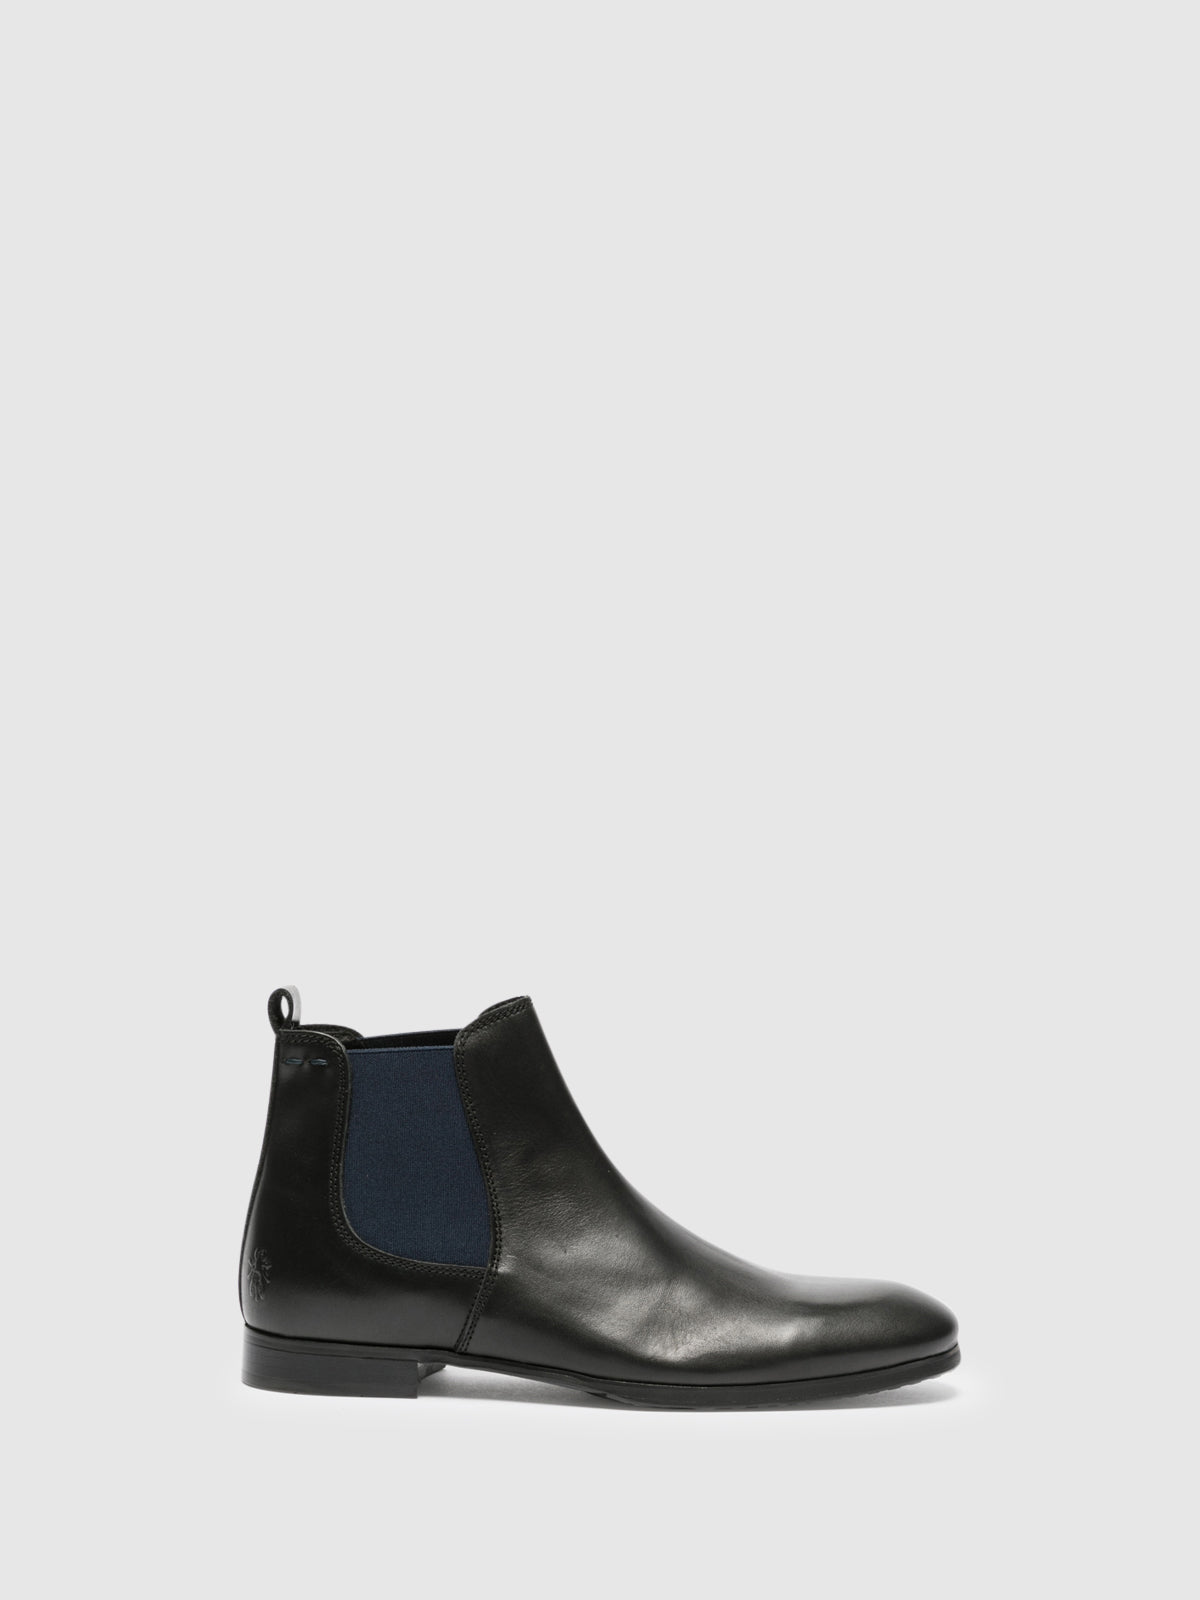 Fly London Botins Chelsea em Preto